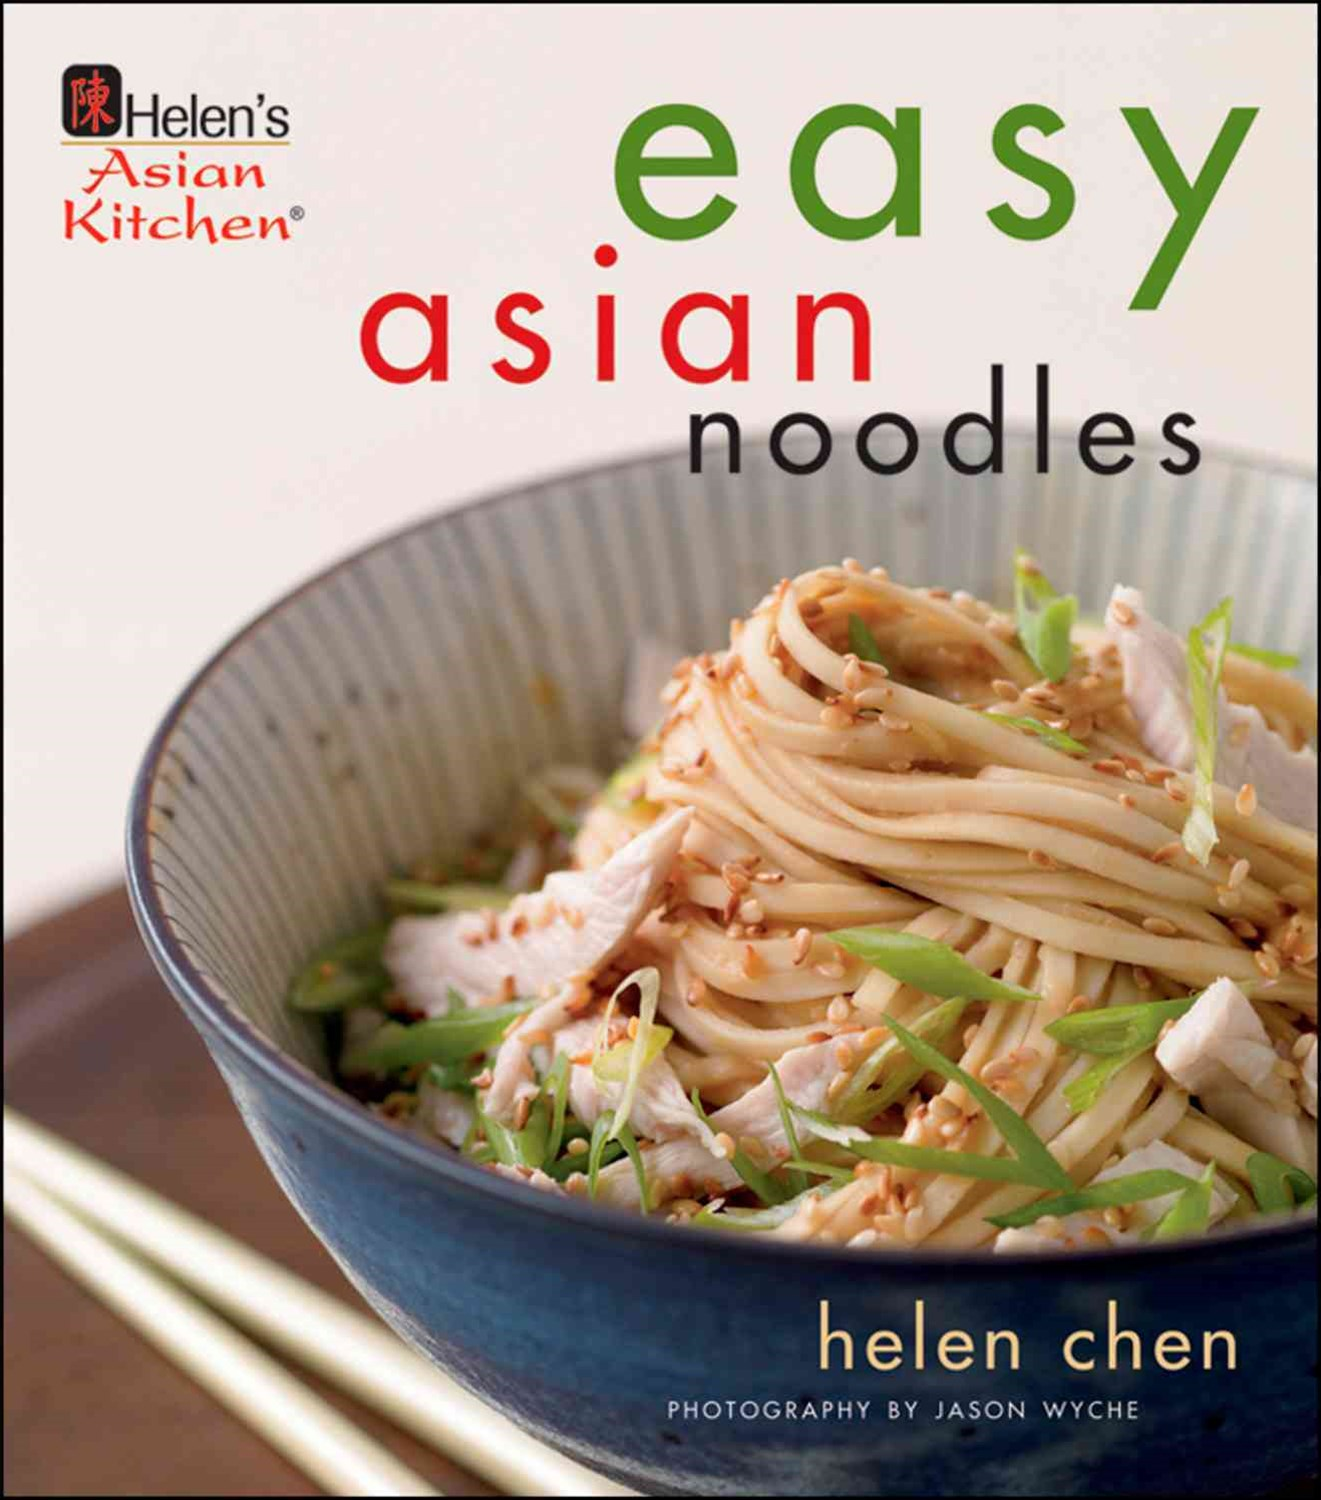 Easy Asian Noodles: Helen's Asian Kitchen